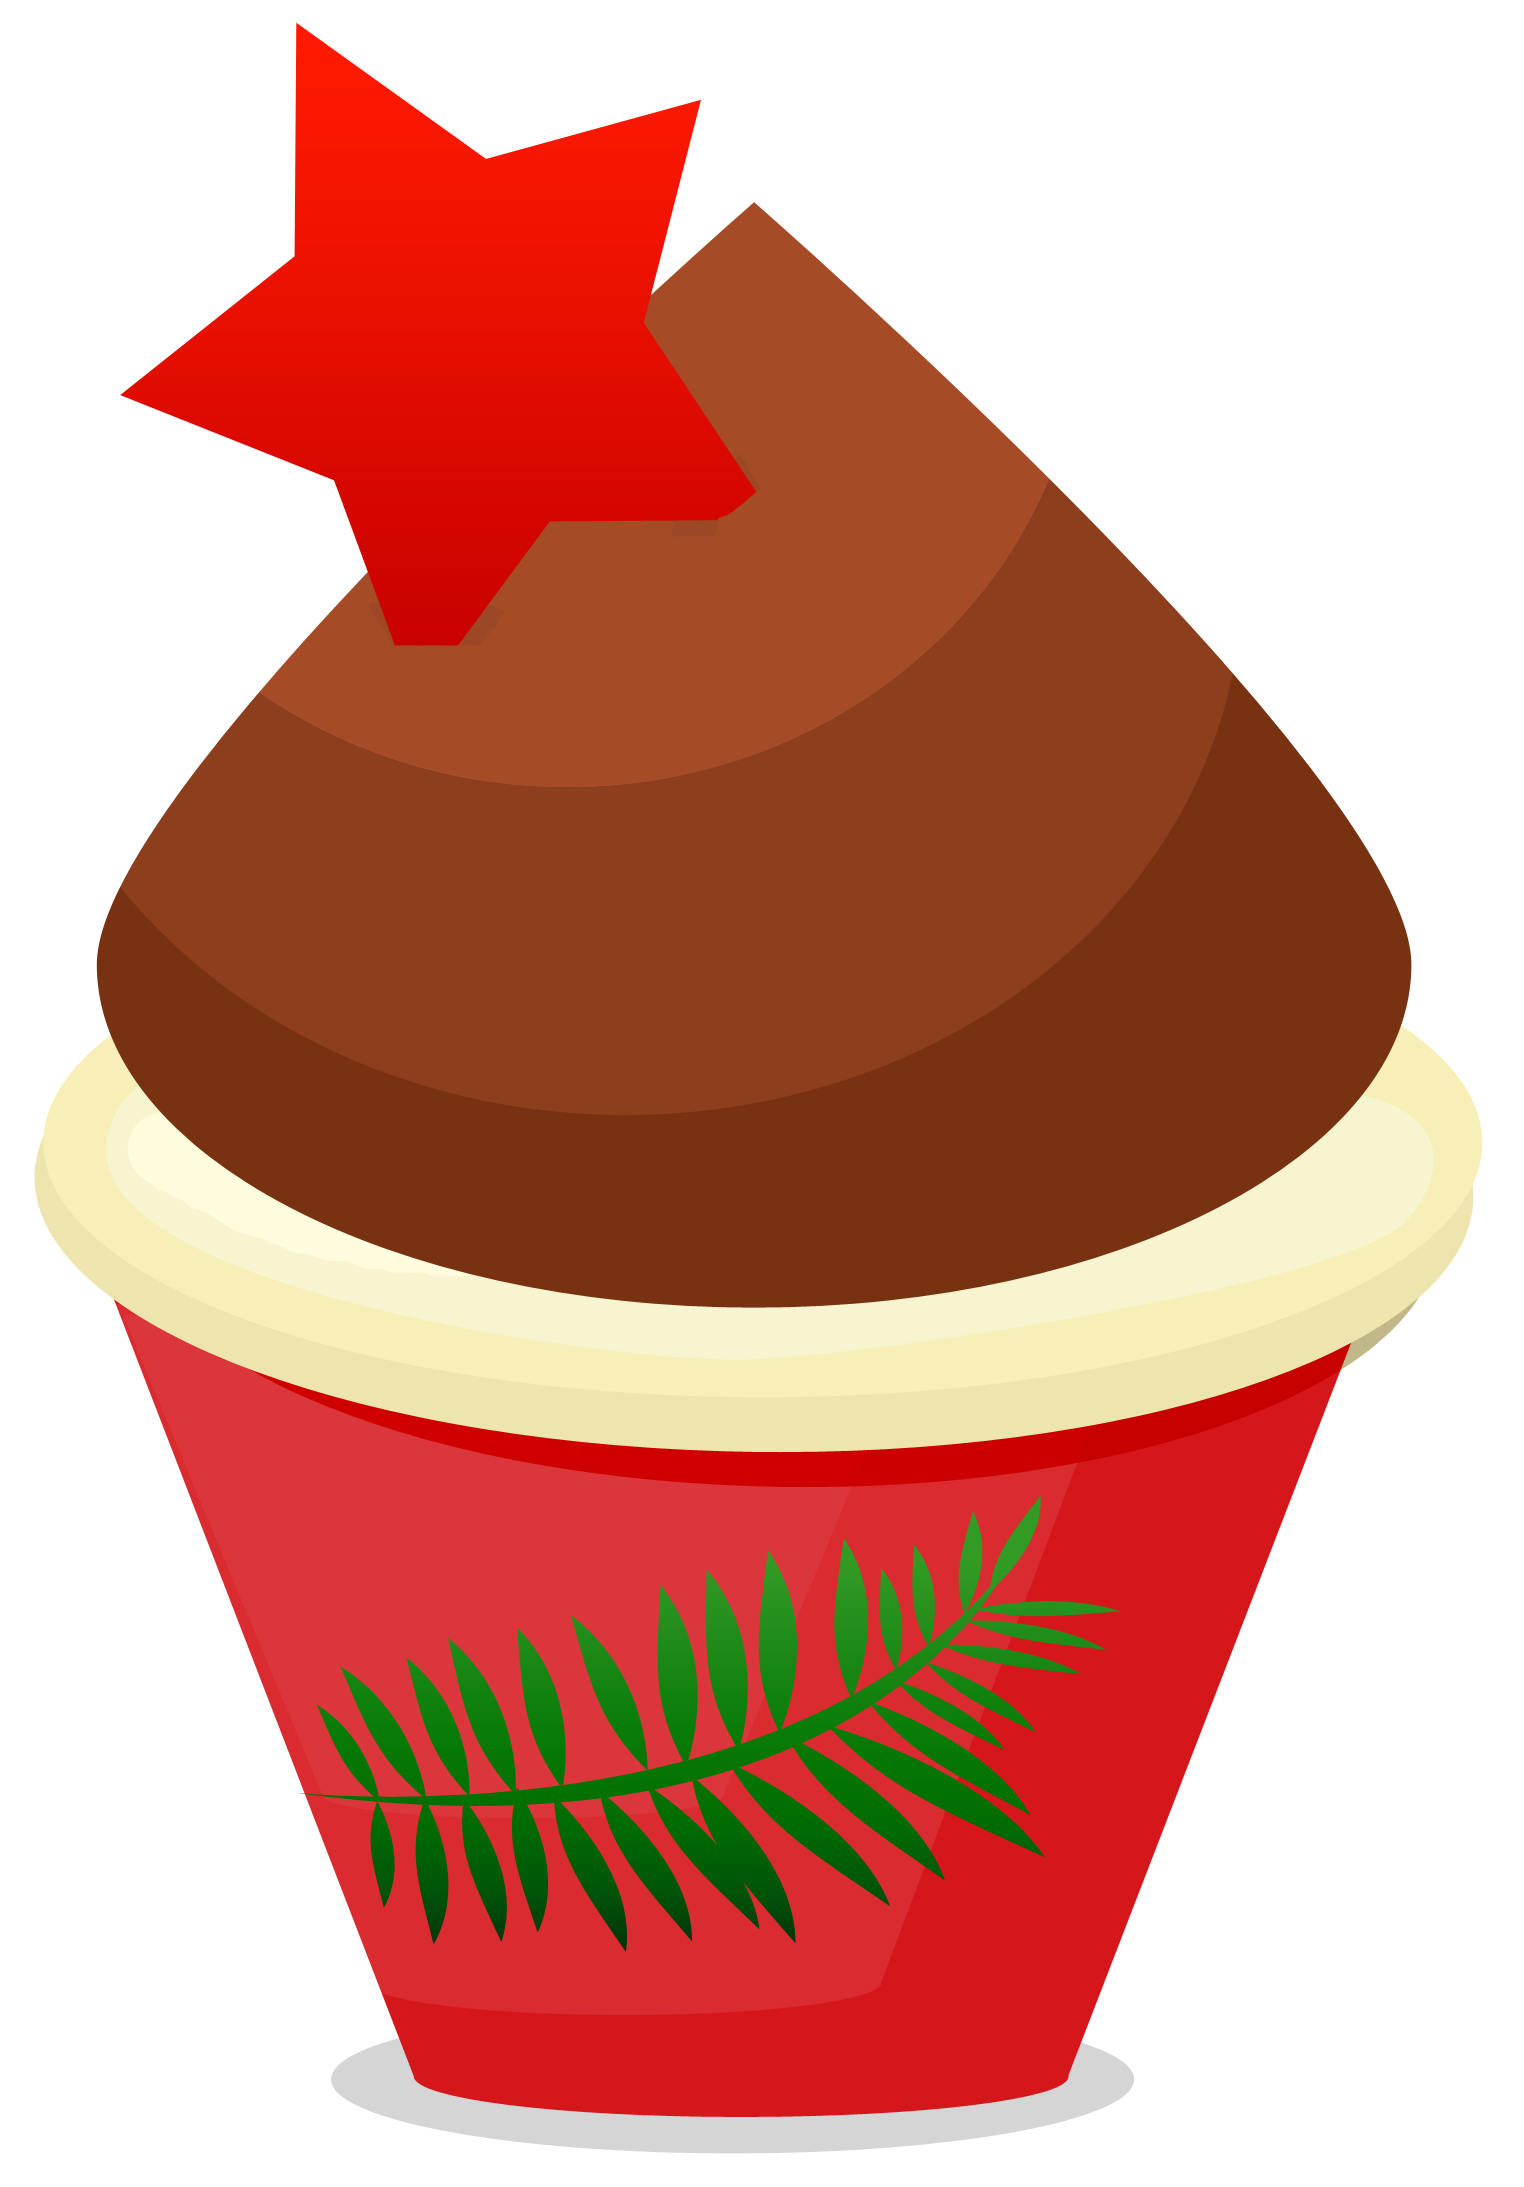 Picture Of Cup Cake.